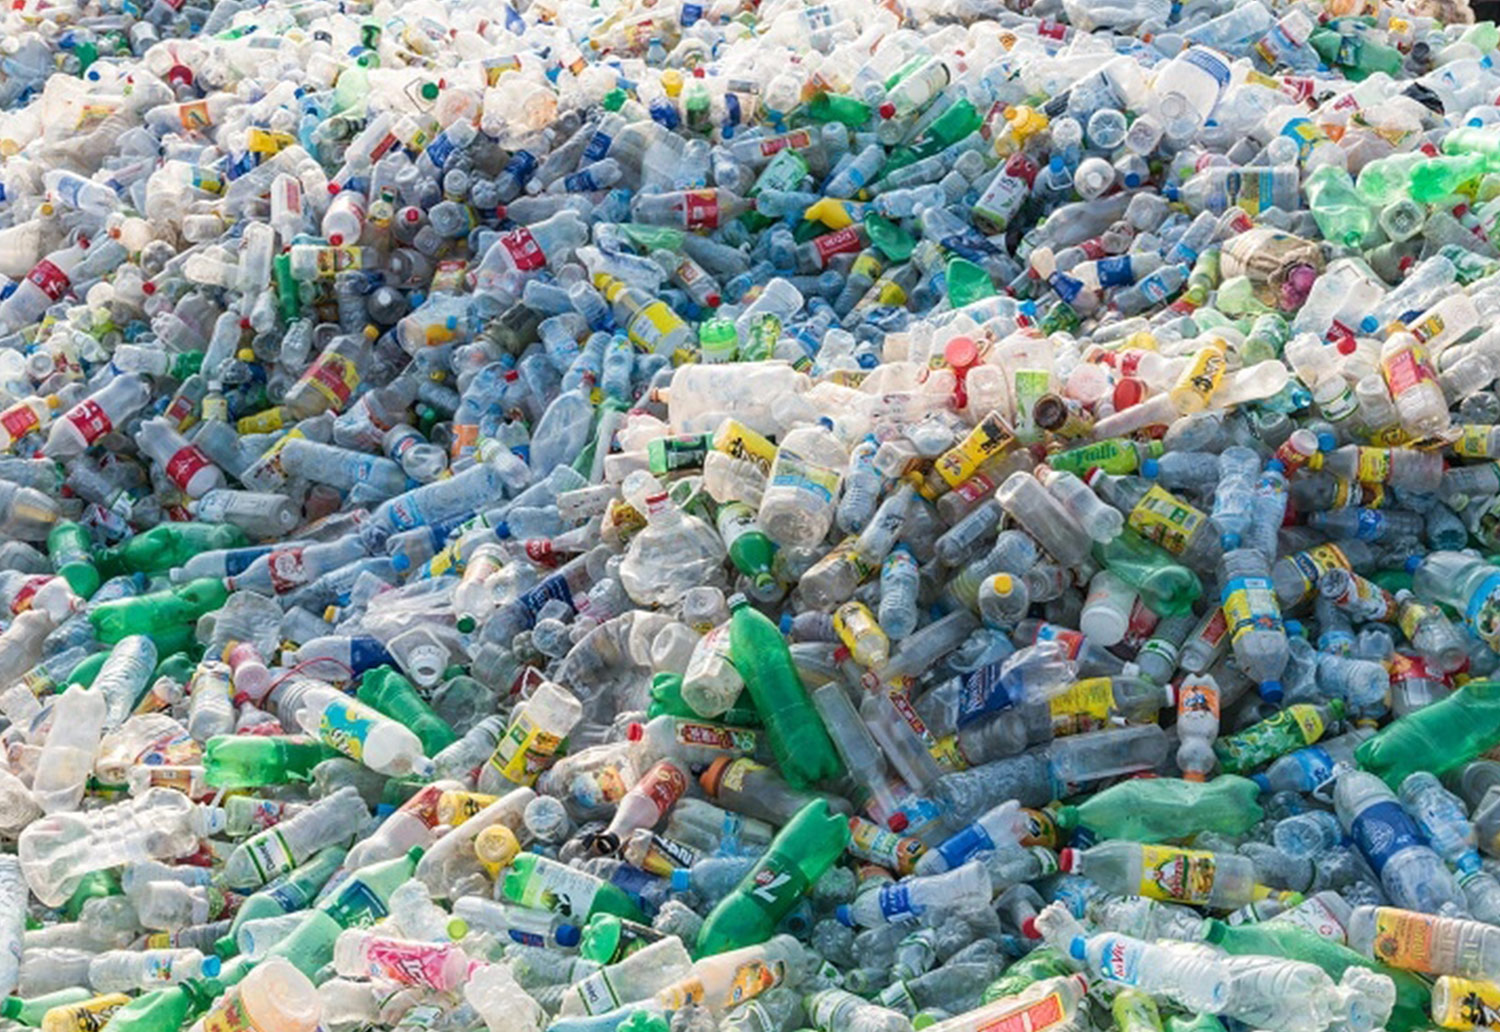 Image of plastic pollution